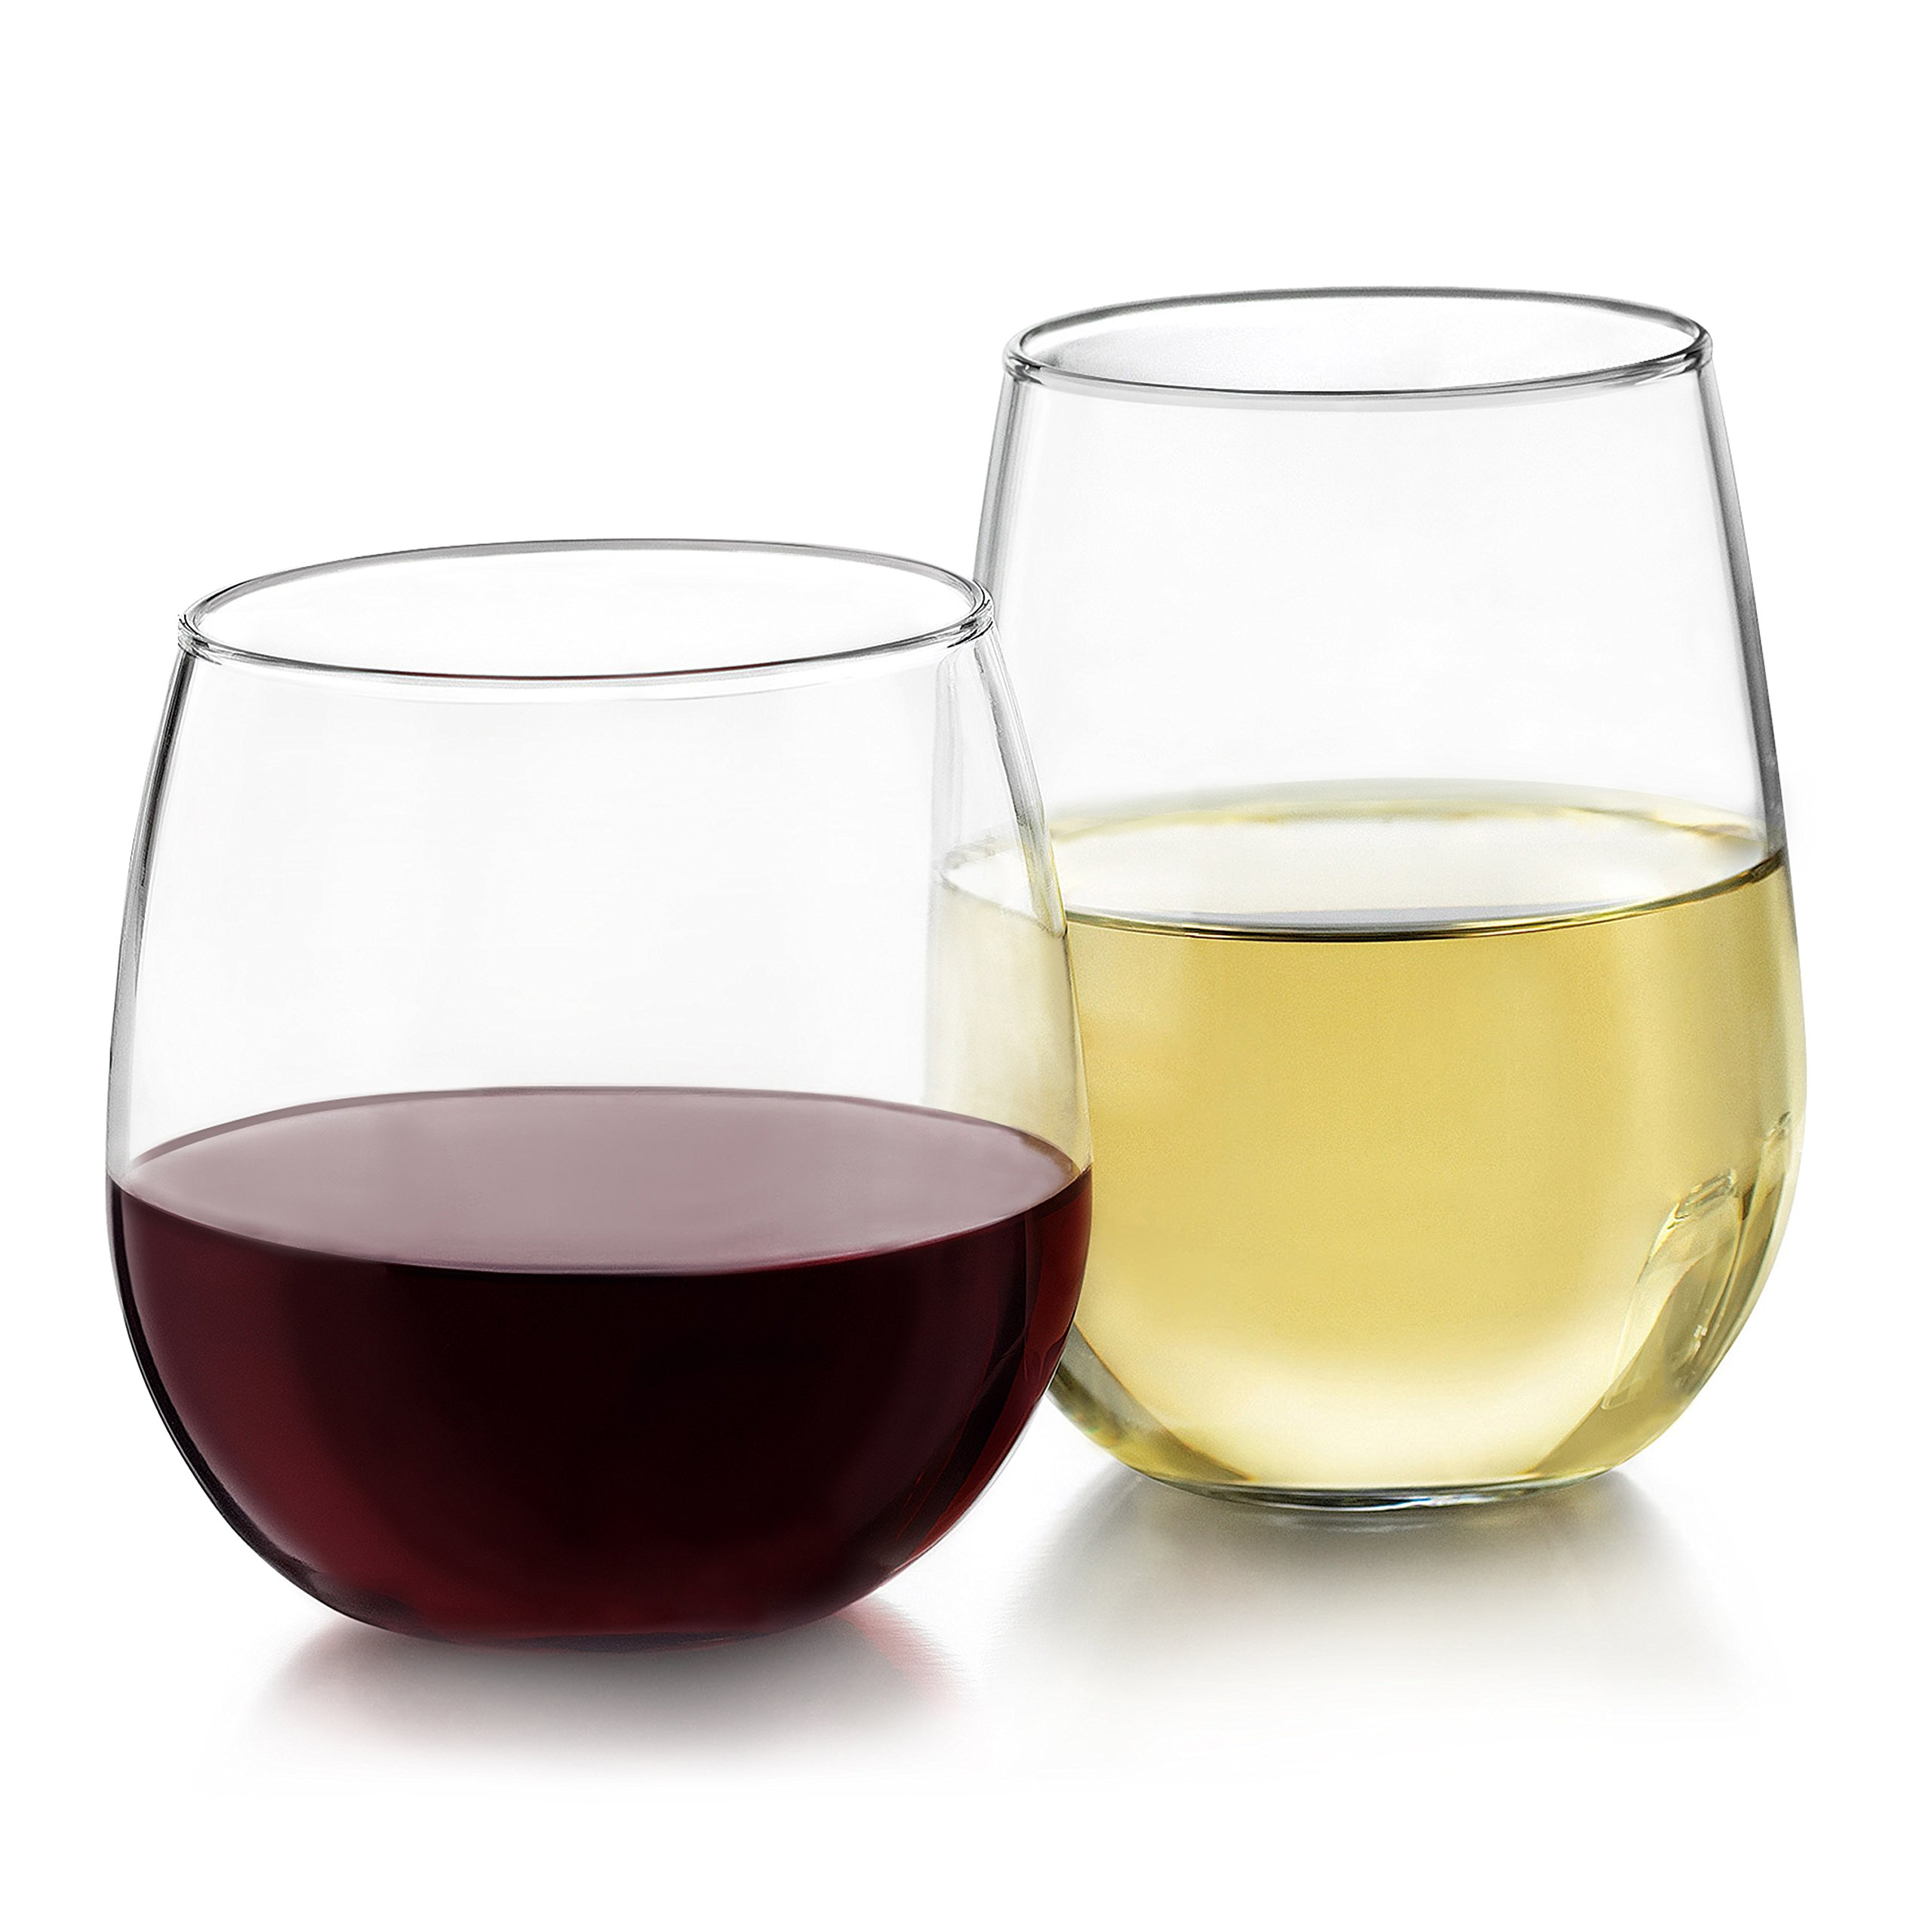 c1788911 Libbey Stemless 12-Piece Wine Glass Party Set for Red and White Wines  product image